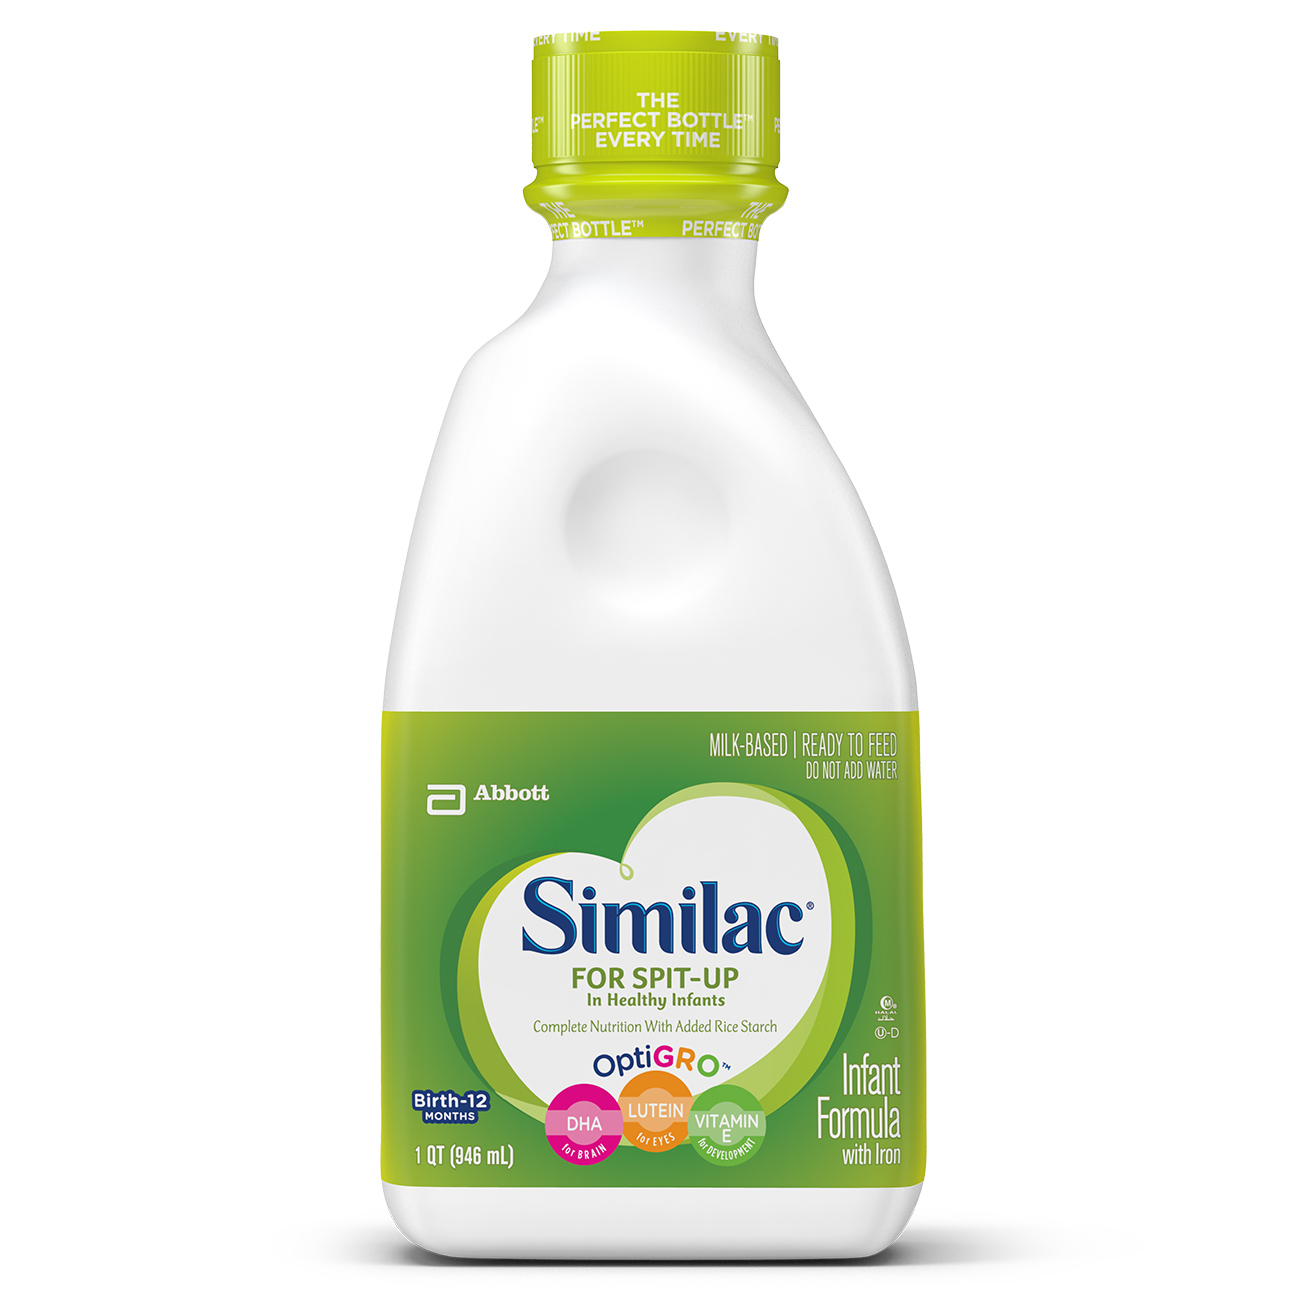 Similac For Spit-Up Infant Formula with Iron, Ready-to-Feed, 1 qt